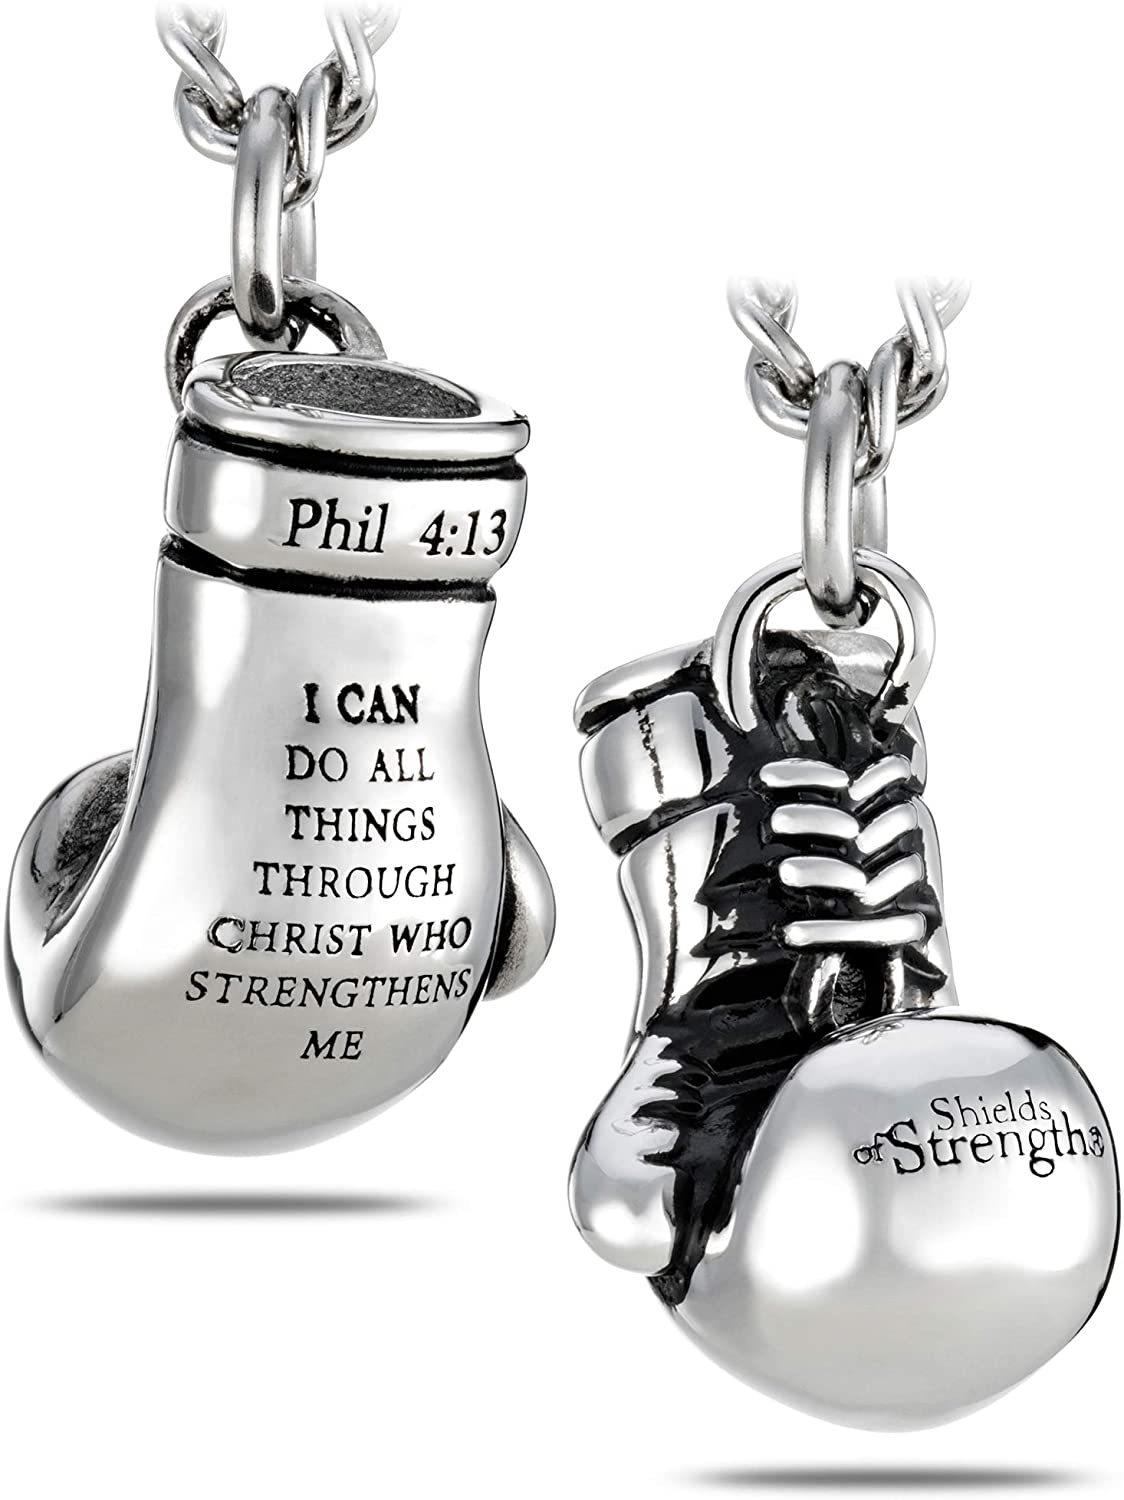 Men's Stainless Steel Boxing Glove Necklace-Phil 4:13